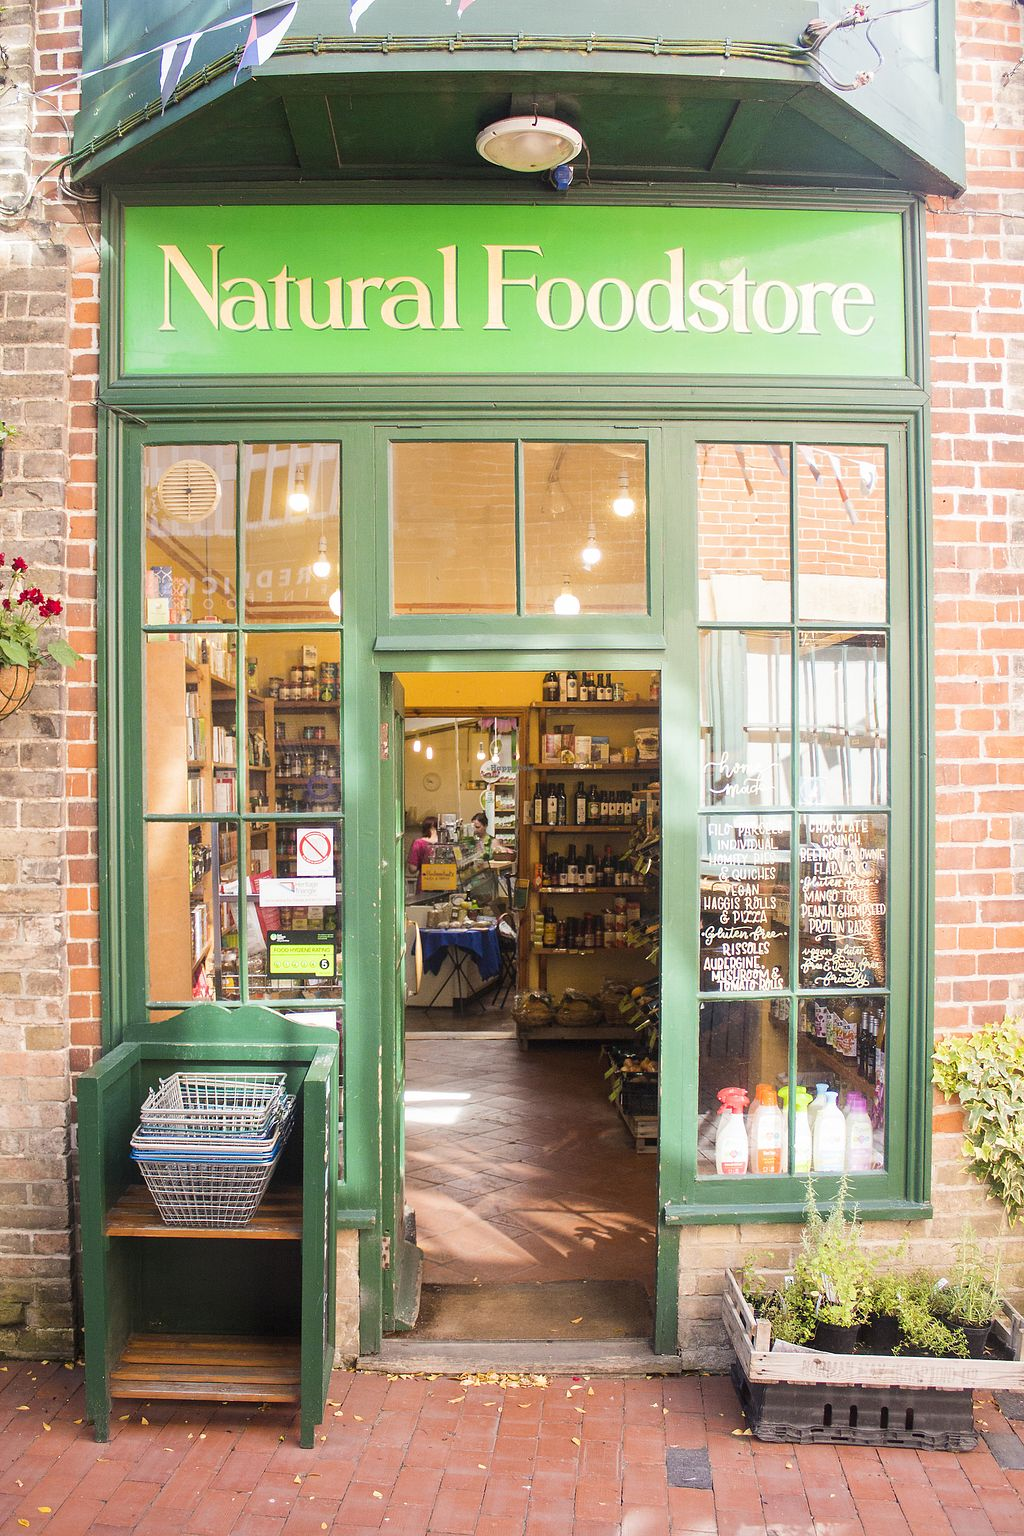 """Photo of Natural Foodstore  by <a href=""""/members/profile/WillJackson"""">WillJackson</a> <br/>Shop front <br/> February 18, 2018  - <a href='/contact/abuse/image/112341/360897'>Report</a>"""